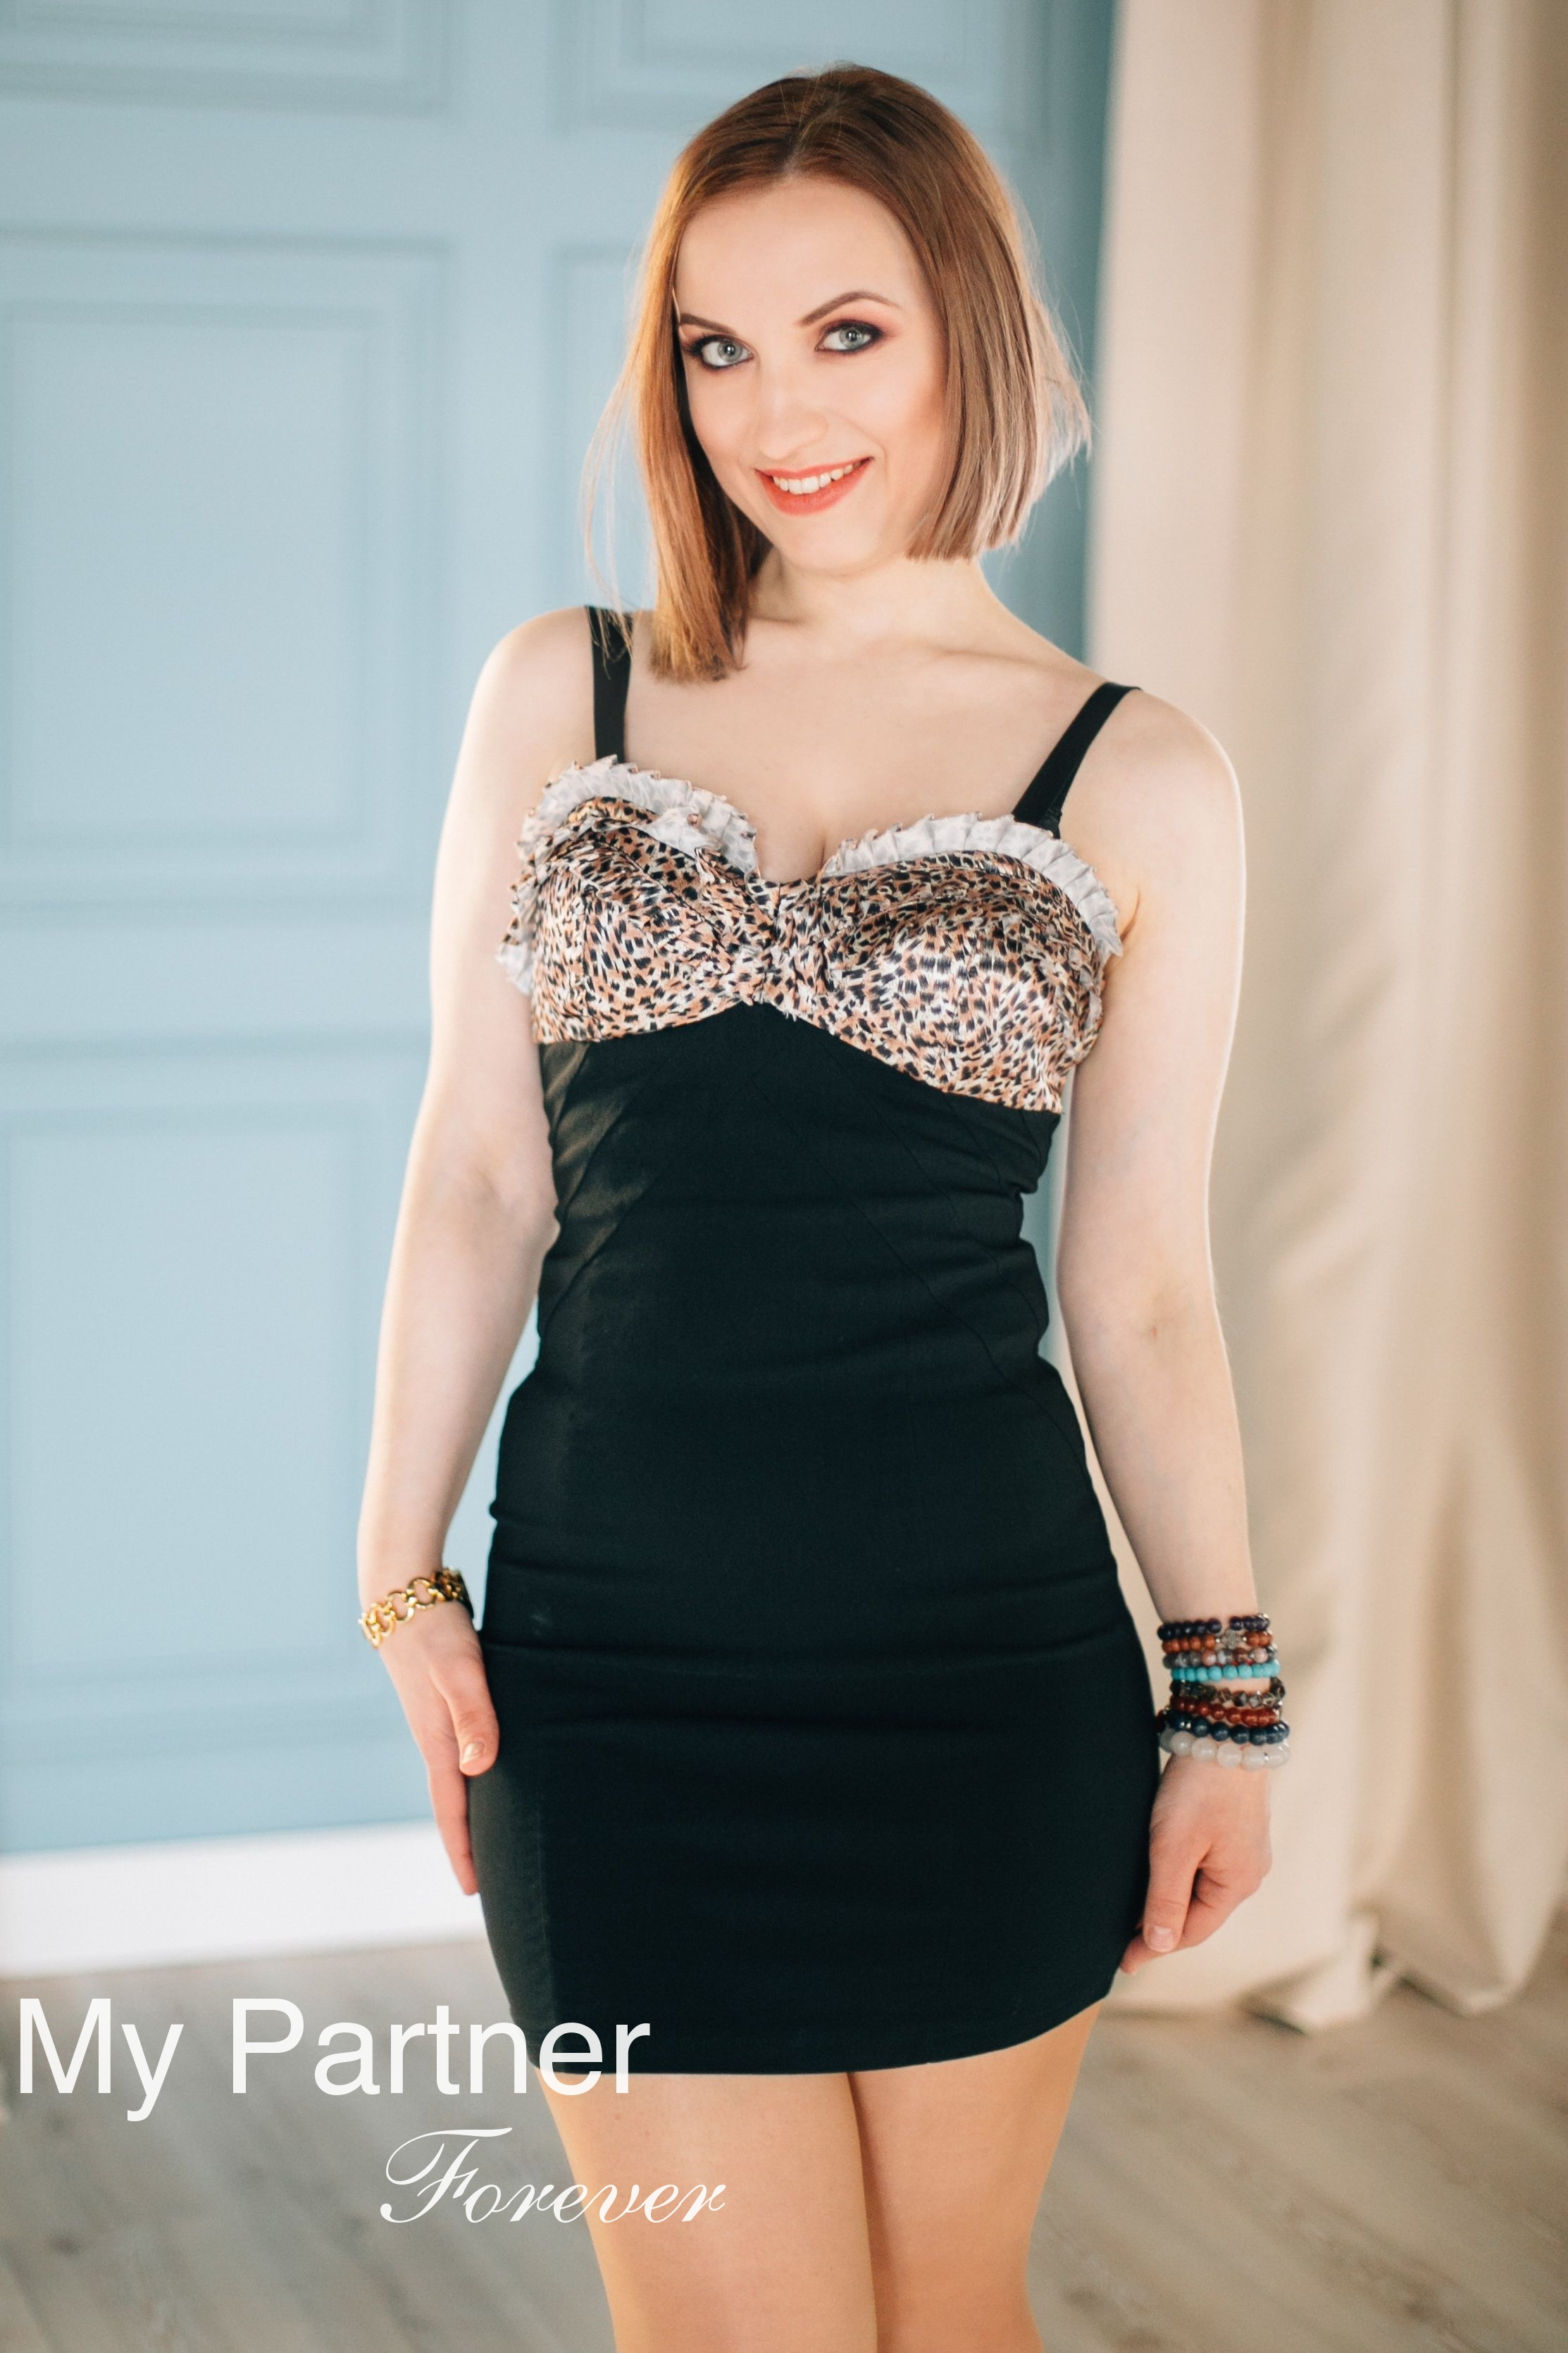 Meet Gorgeous Belarusian Girl Alina from Grodno, Belarus